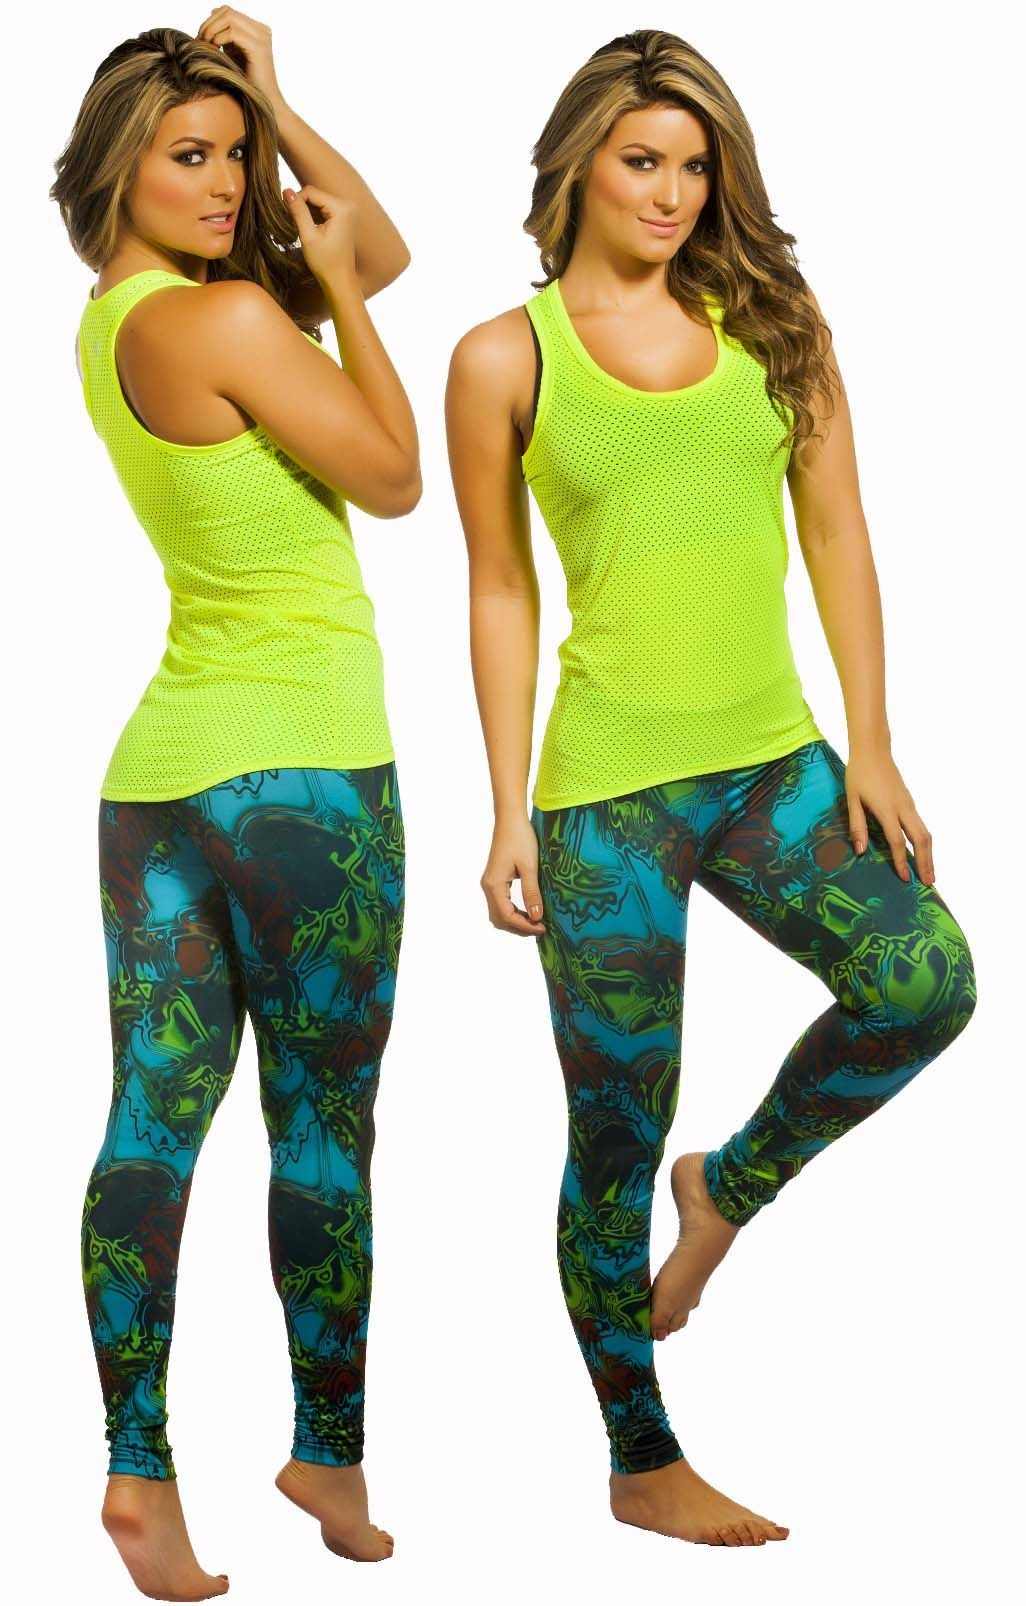 Home Umbra Sports Women activewear, fitness and